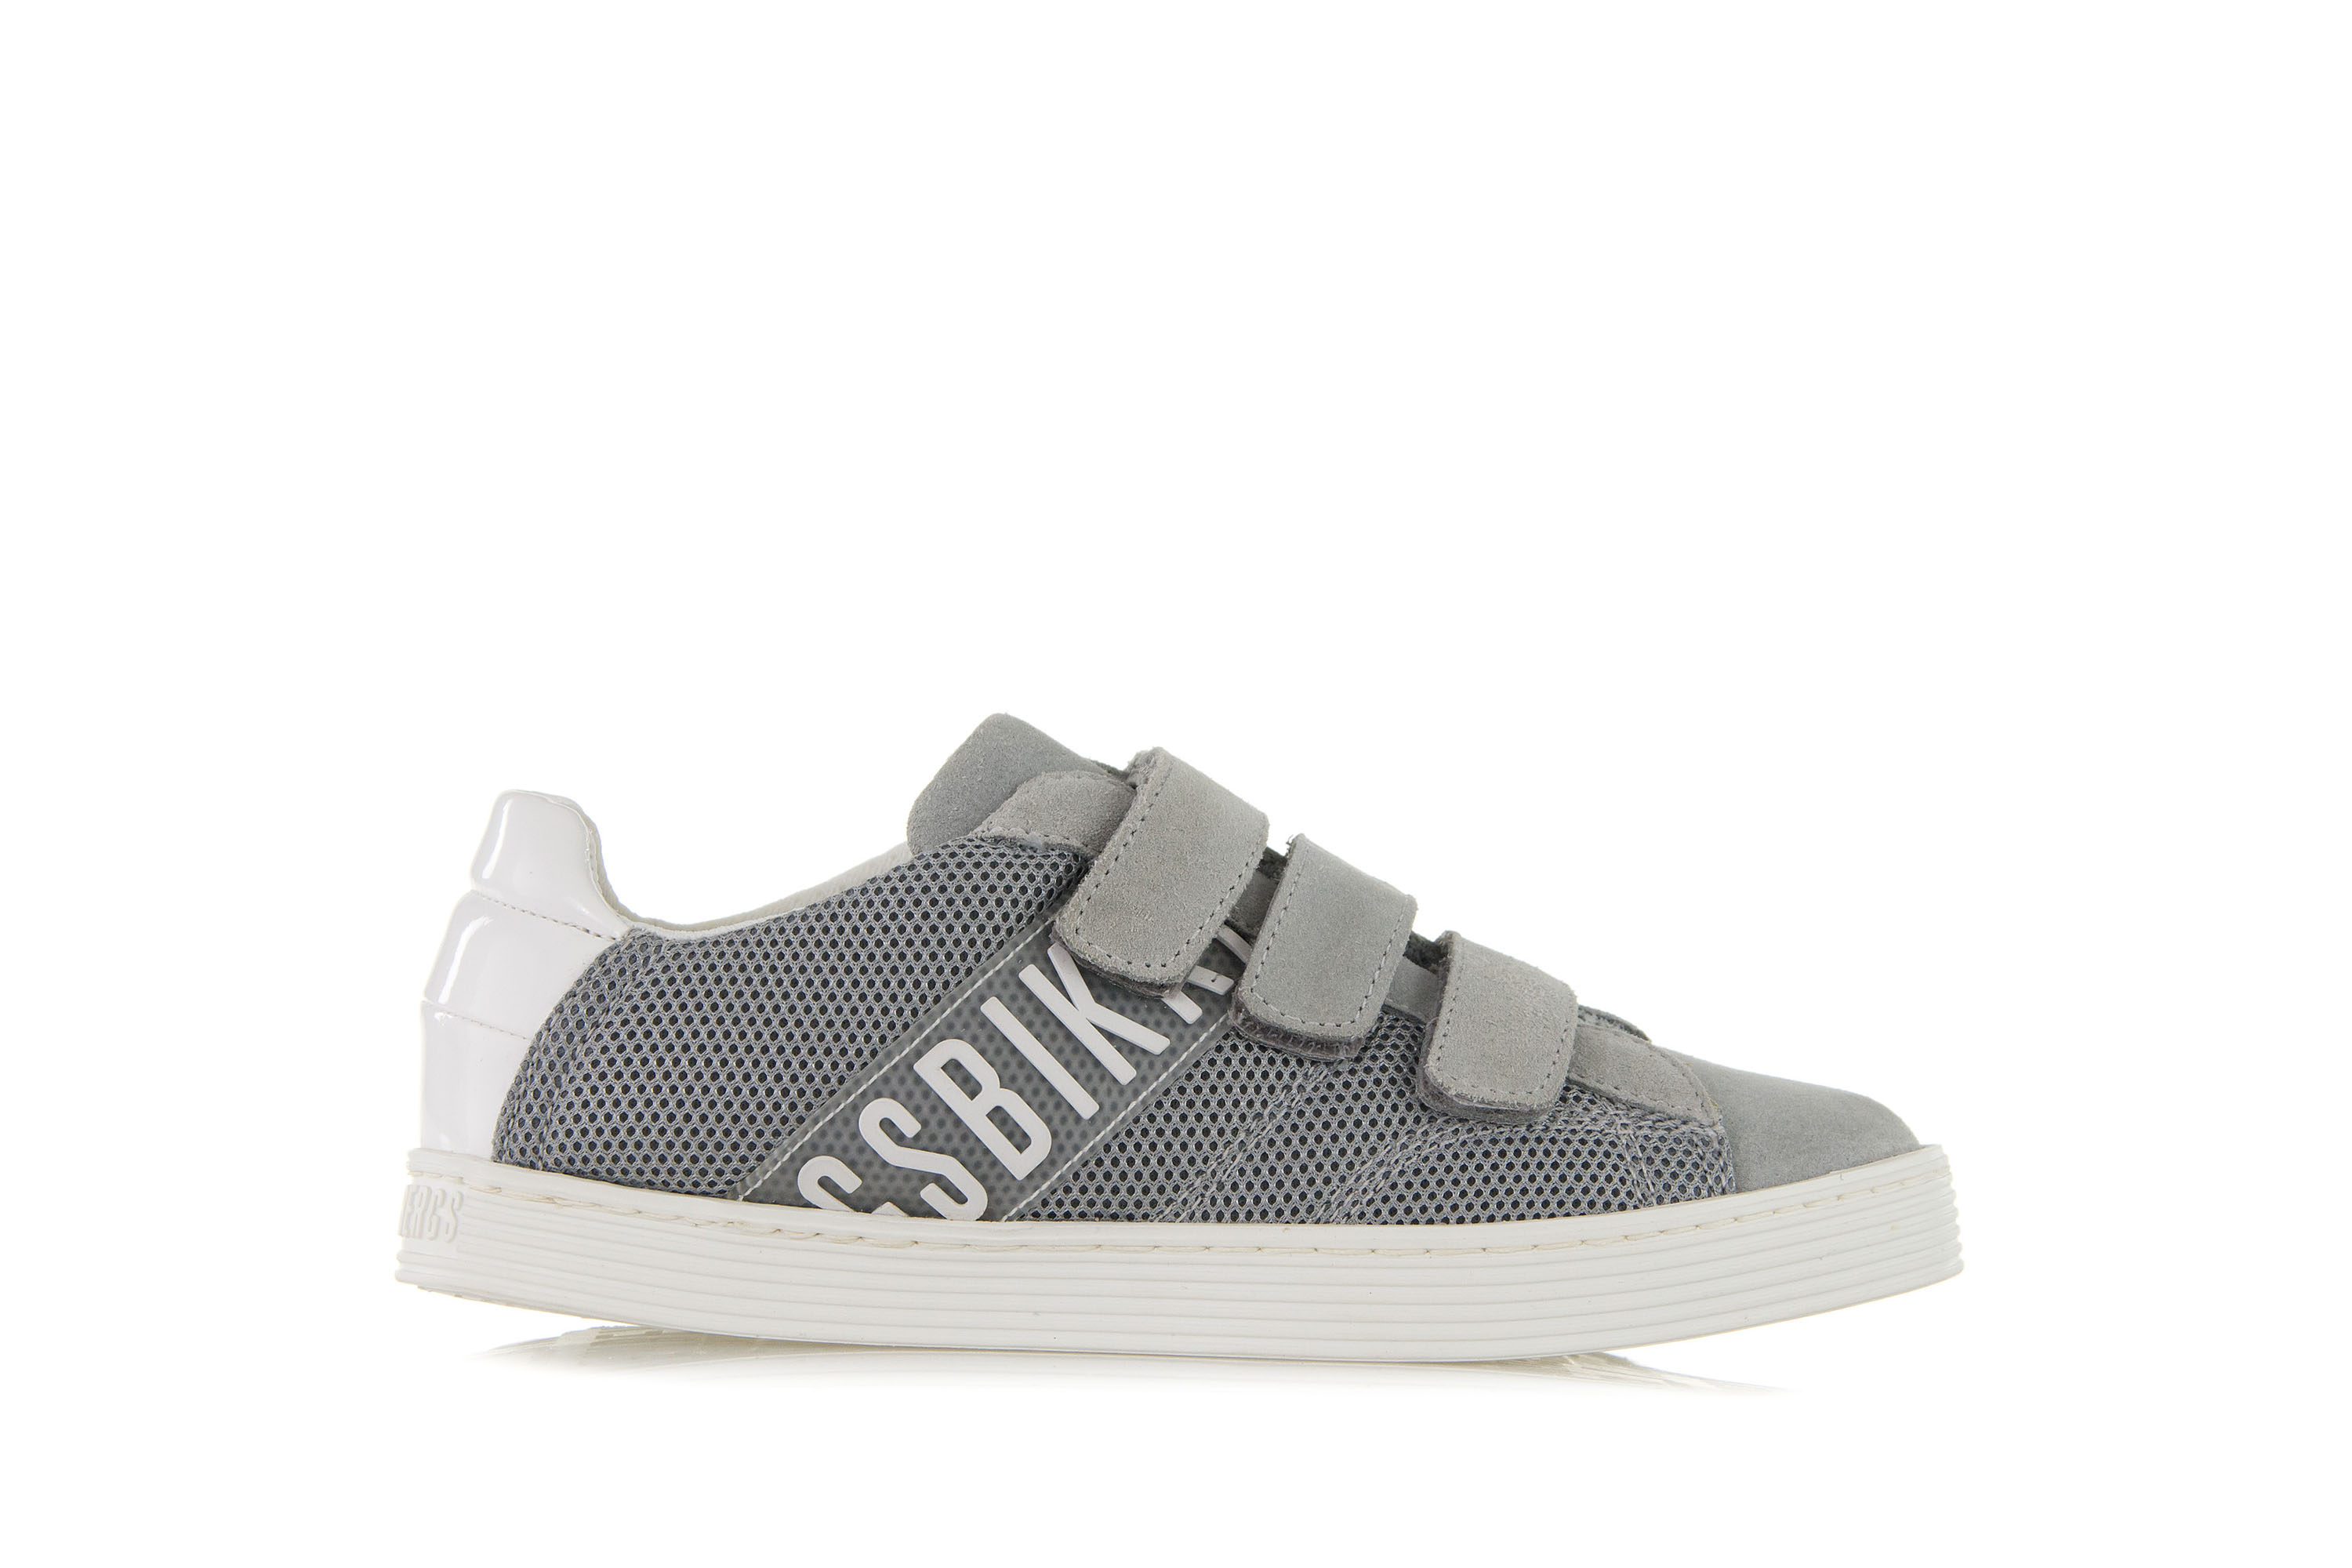 Details about BIKKEMBERGS Kids Boys Shoes Sneakers WORD I87 LOW SHOE Gray Textile Suede